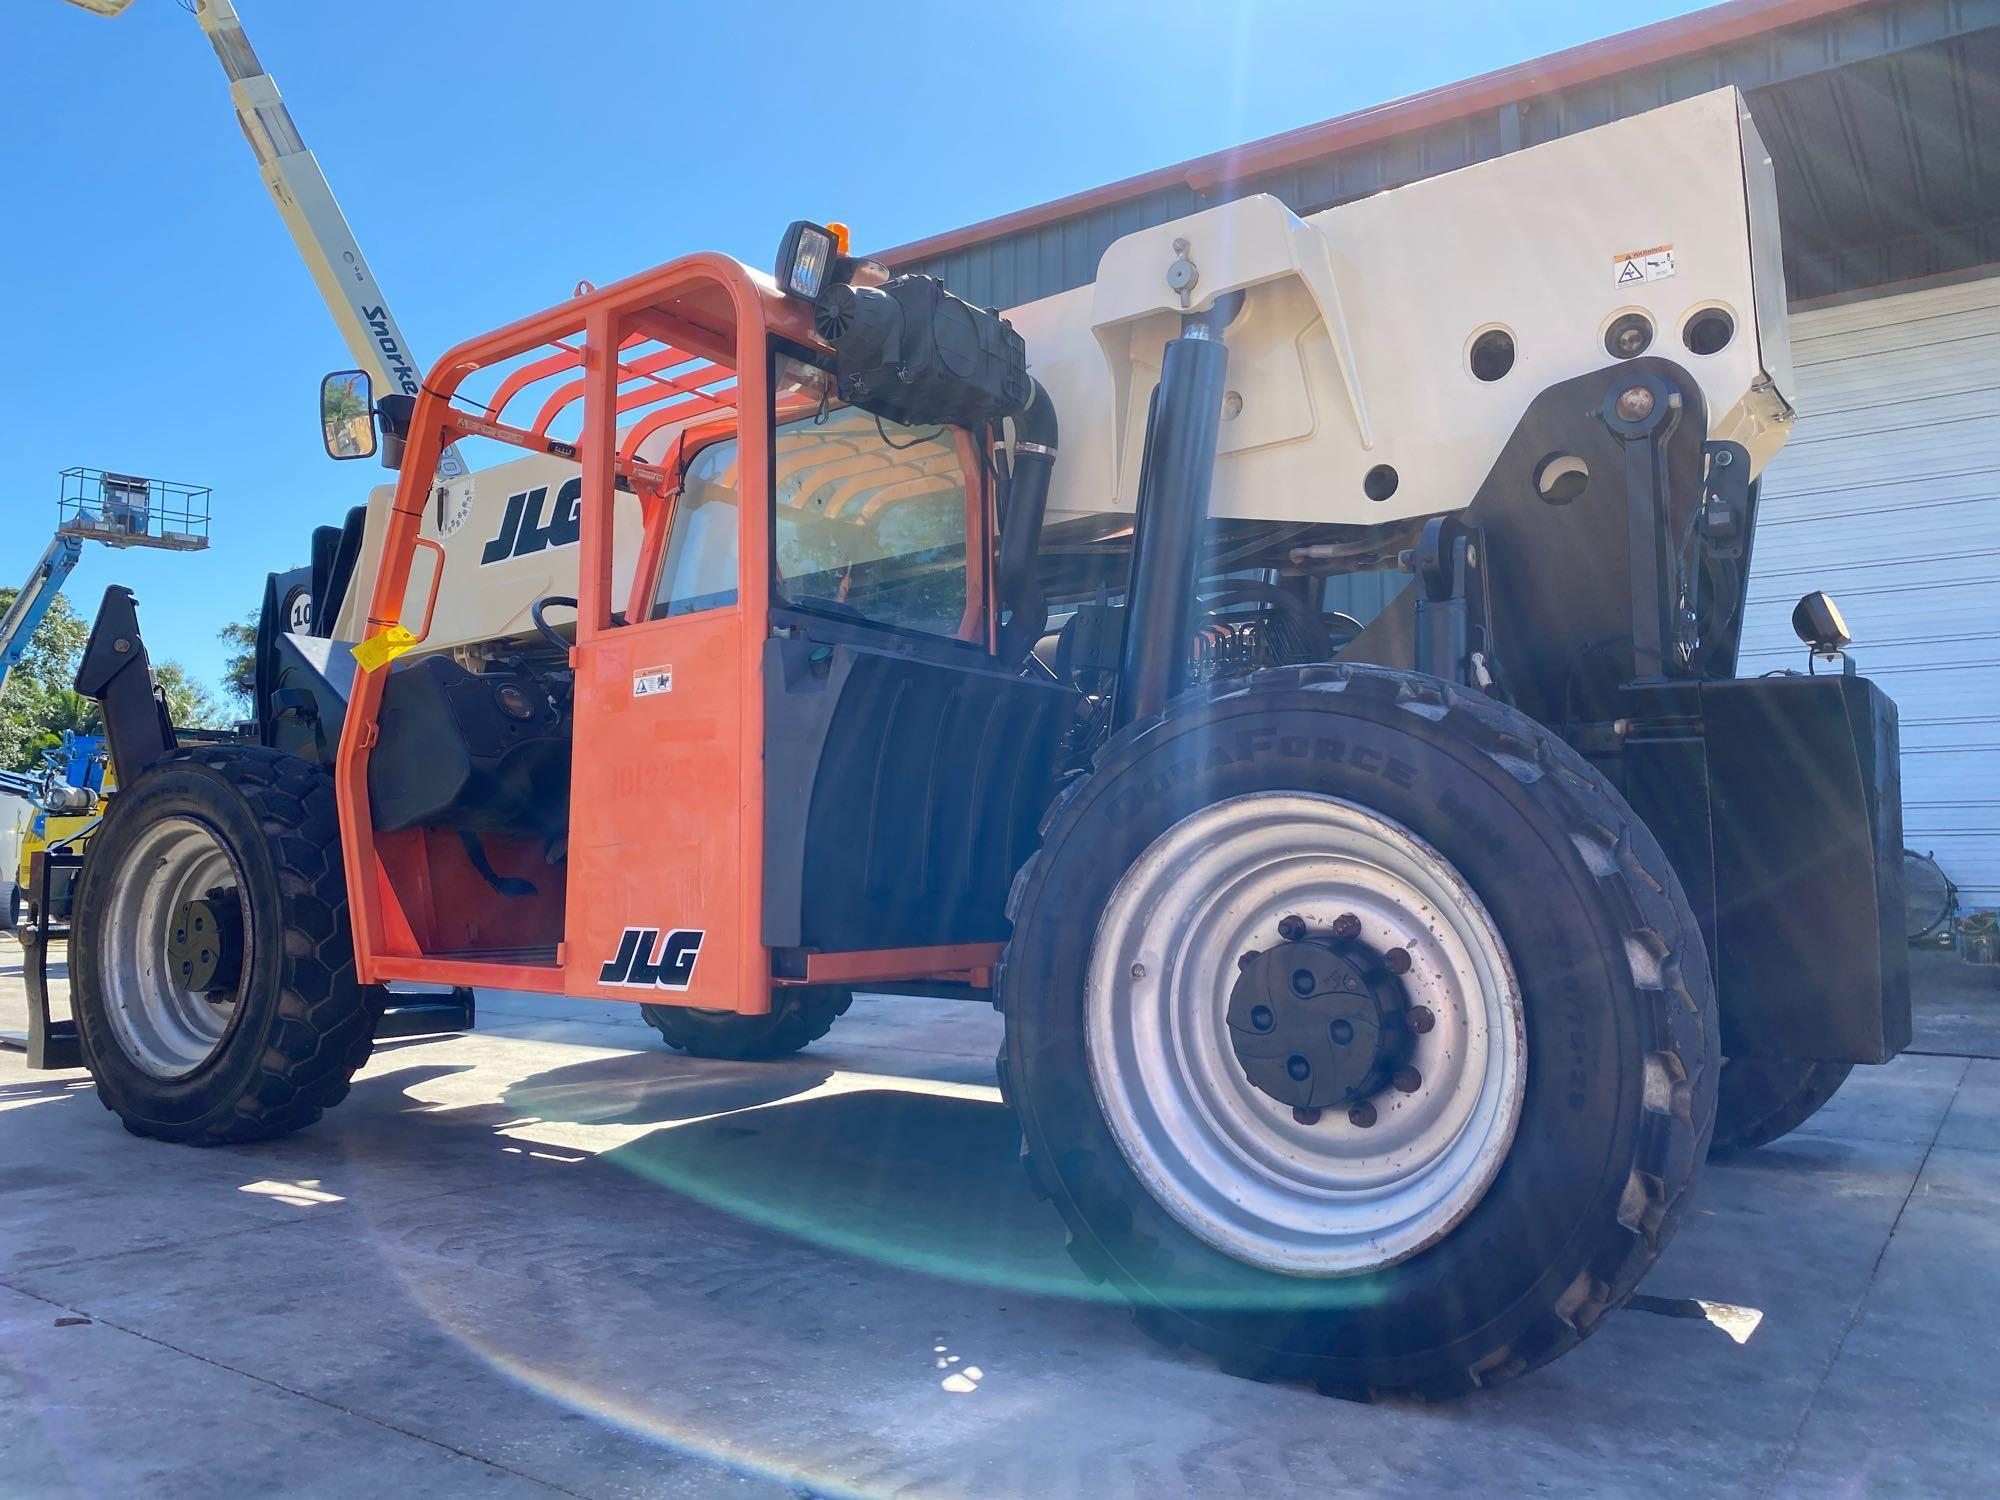 2013 JLG TELESCOPIC FORKLIFT MODEL G10-55A, 10,000 LB CAPACITY, OUTRIGGERS, 5,717.7 HOURS SHOWING, C - Image 11 of 16